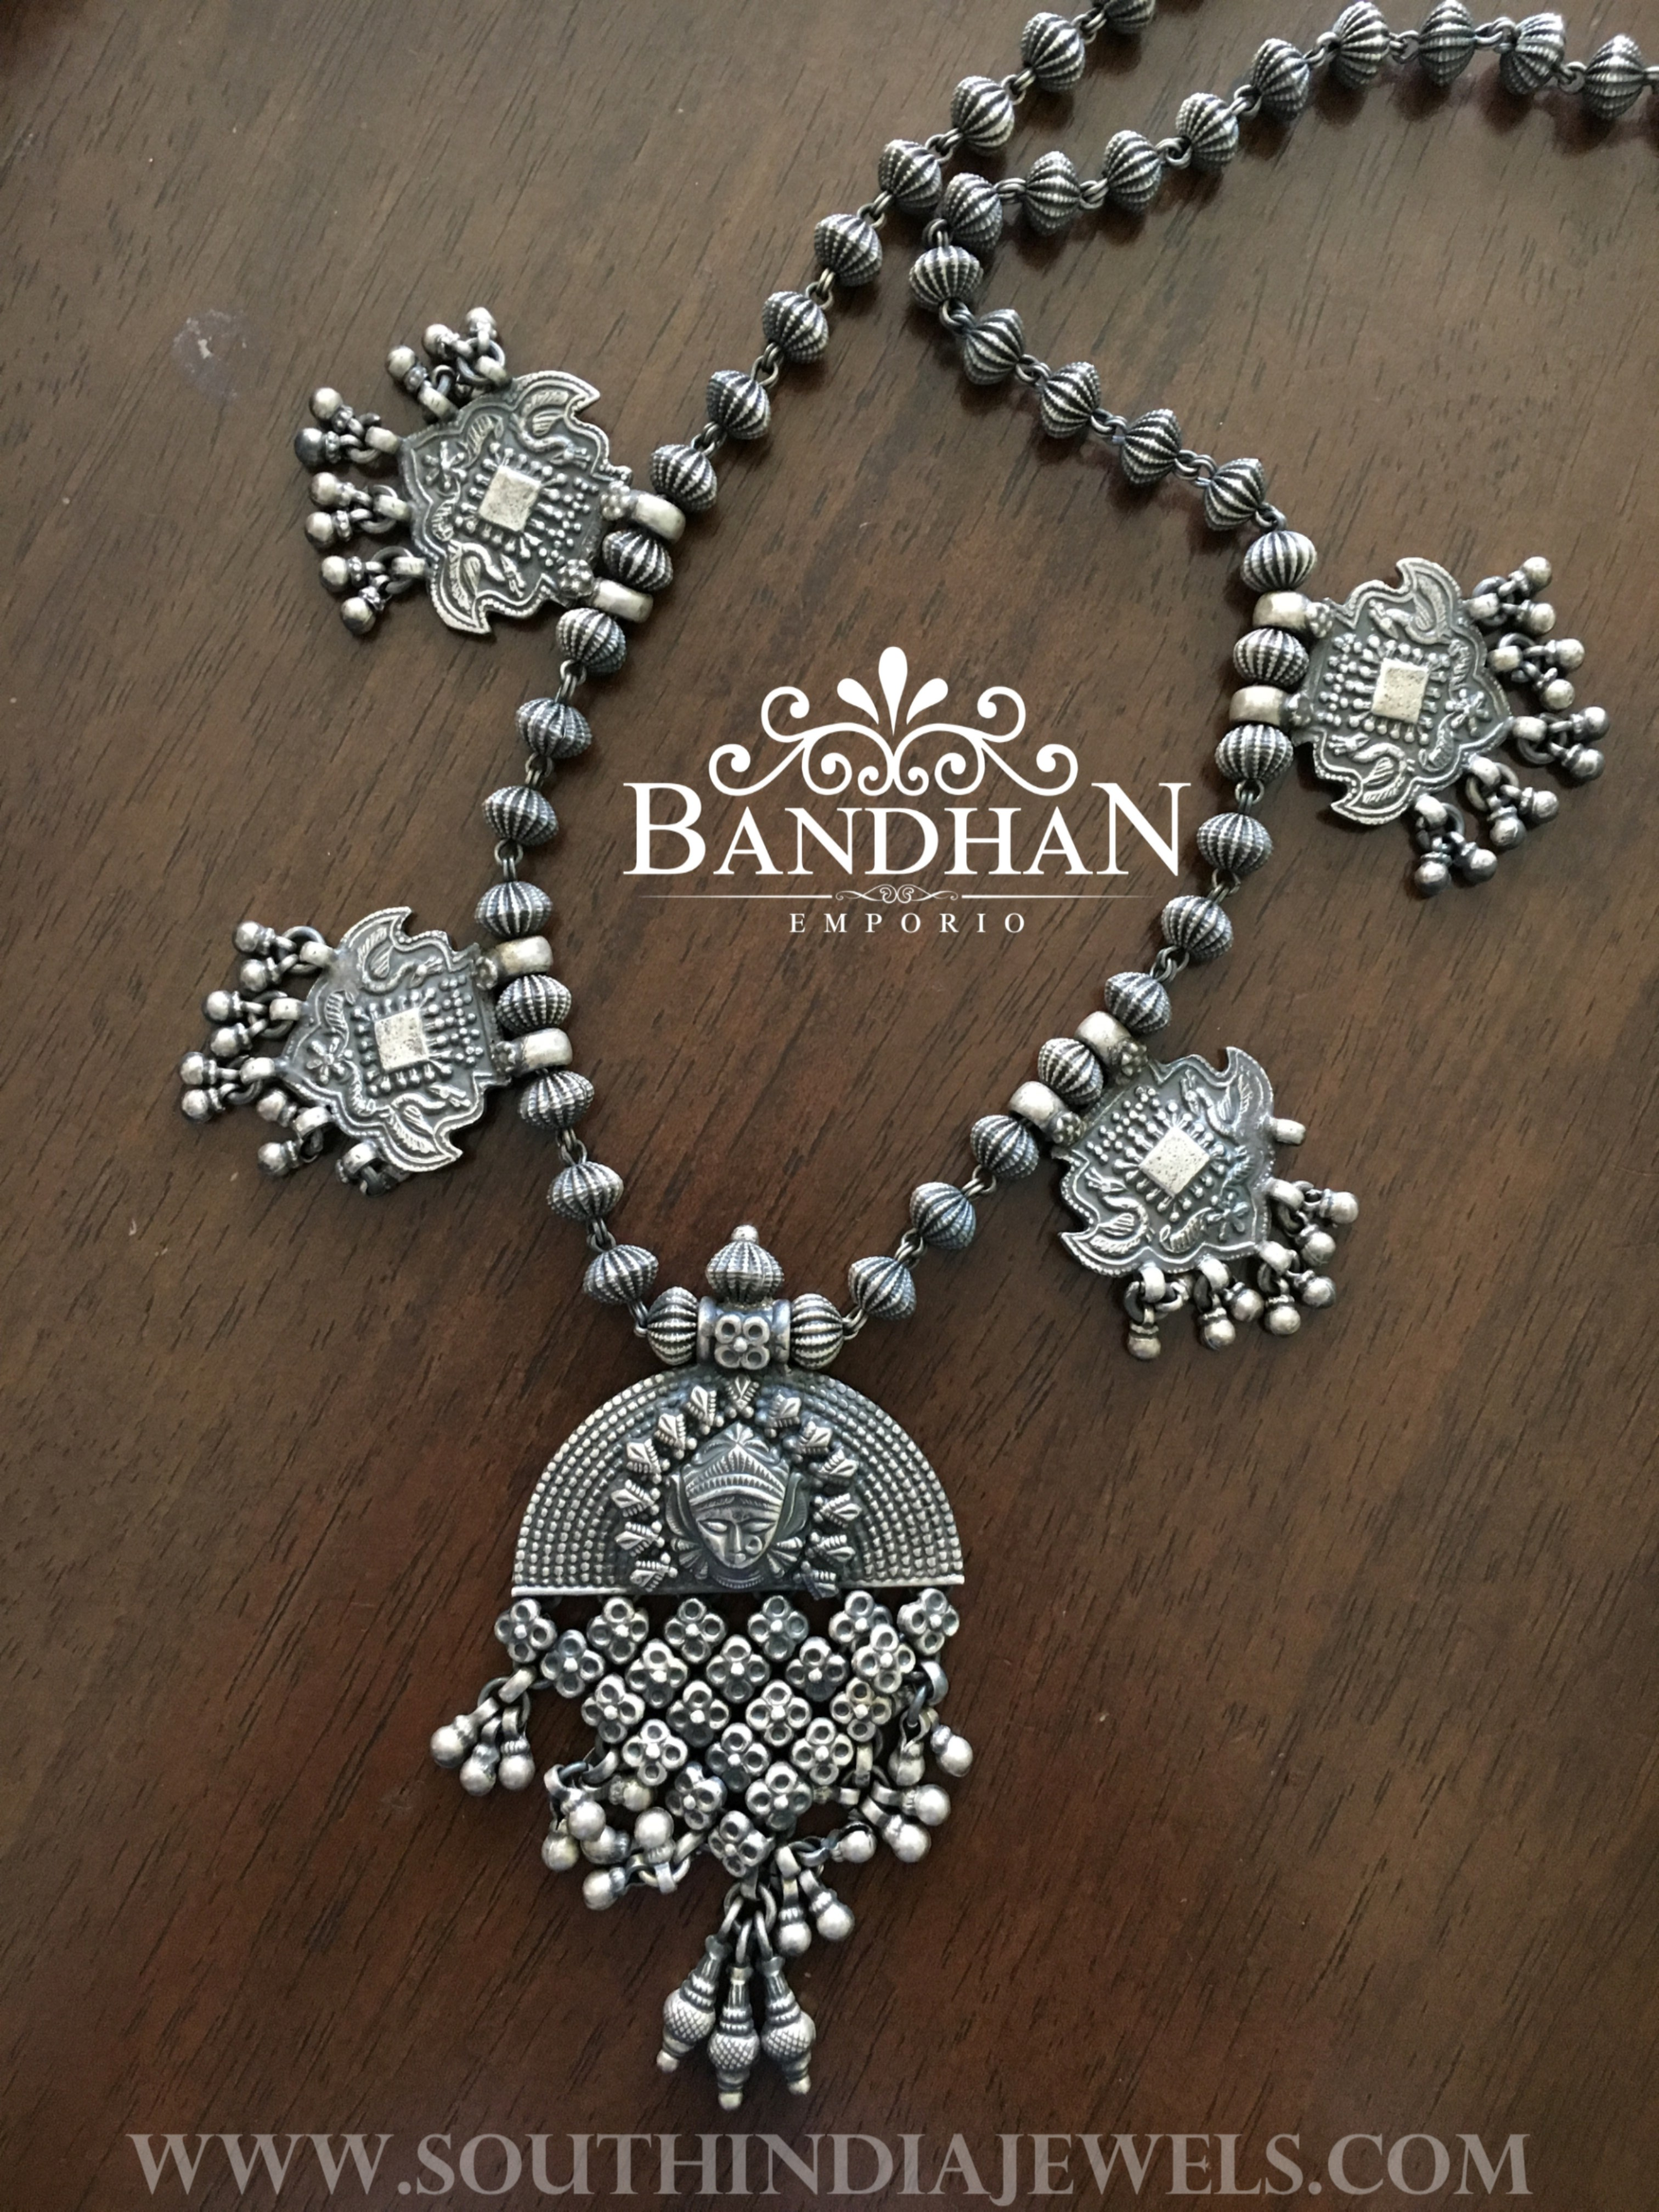 Bandhan Emporio South India Jewels